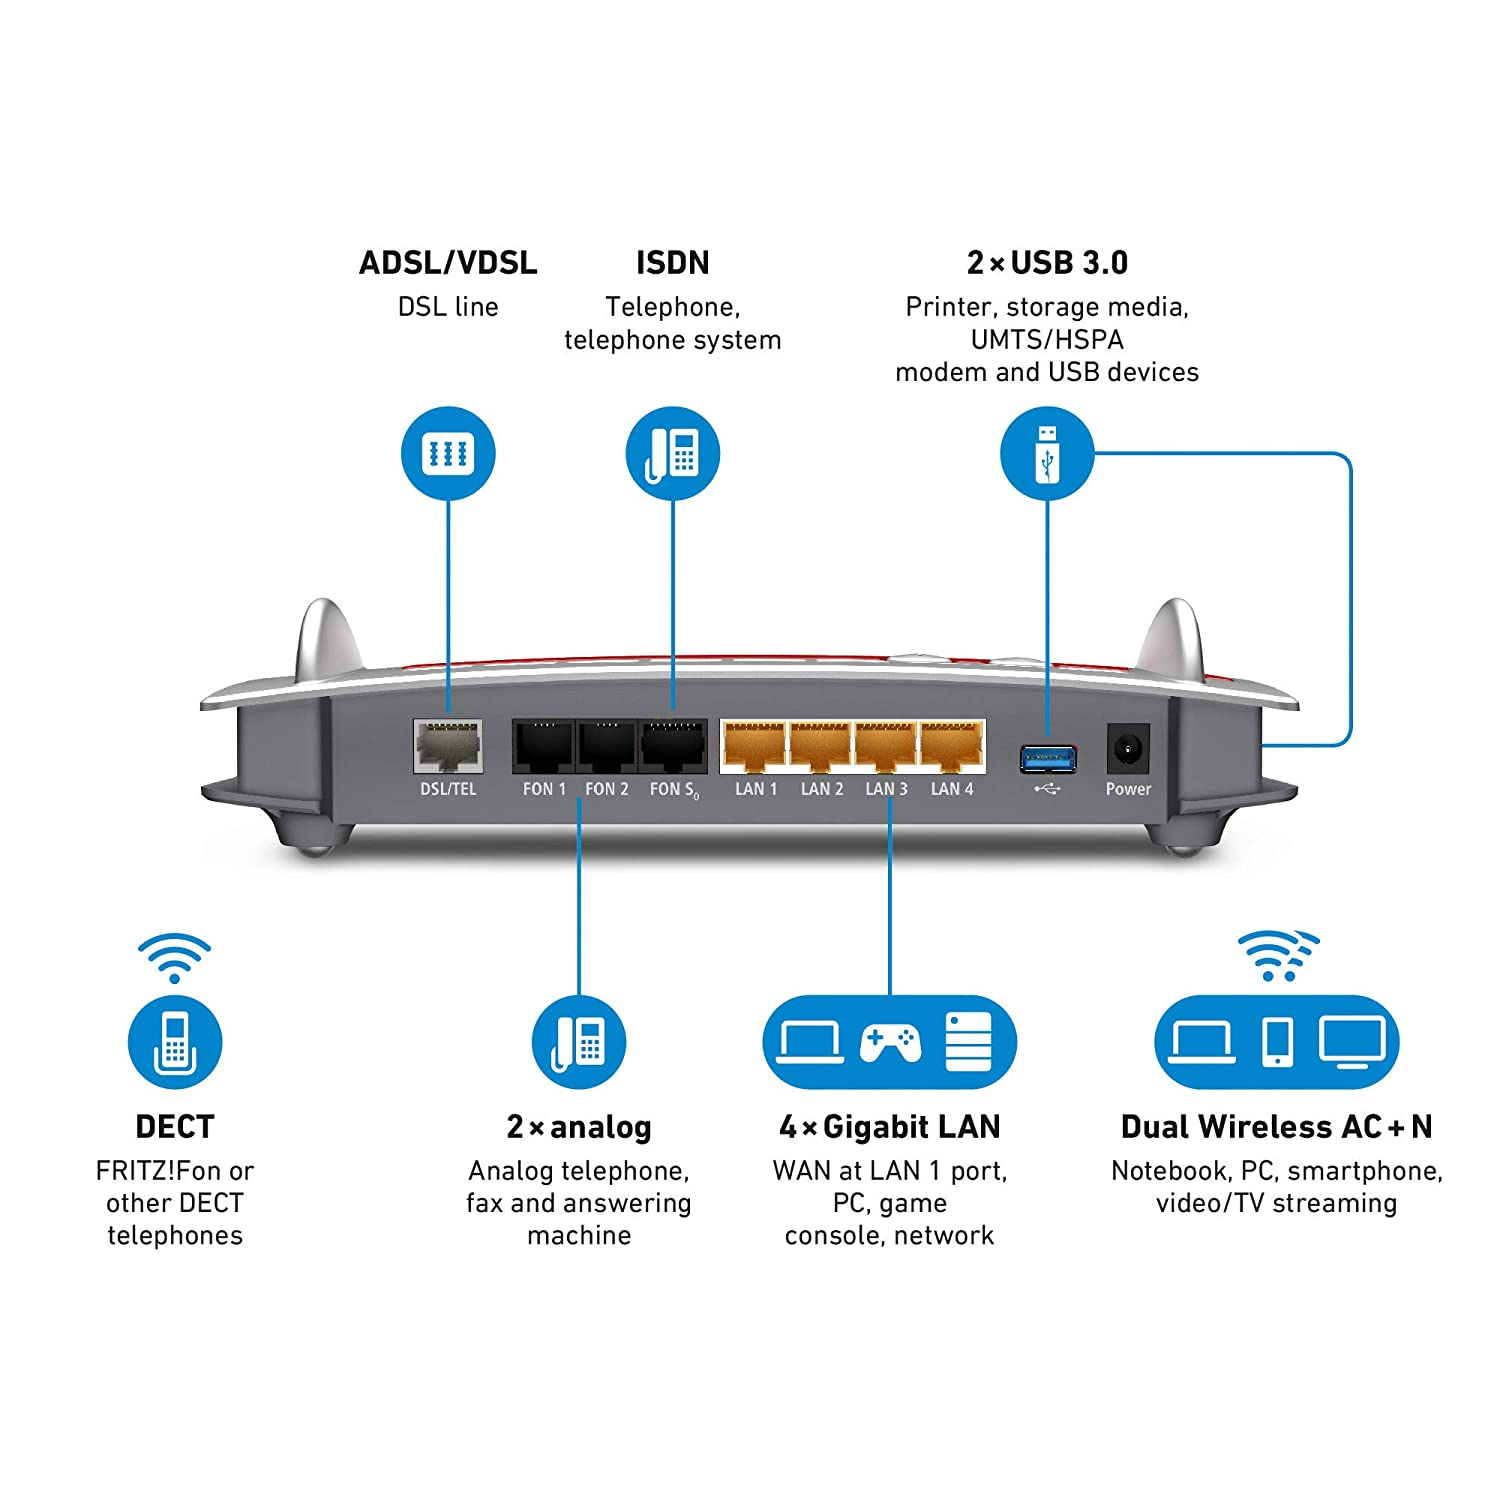 Avm Fritzbox 7490 International 4 Port Gigabit Wi Fi 11ac Router Wiring A House For Ethernet Uk Box With Integrated Fttc Adsl Modem Computers Accessories